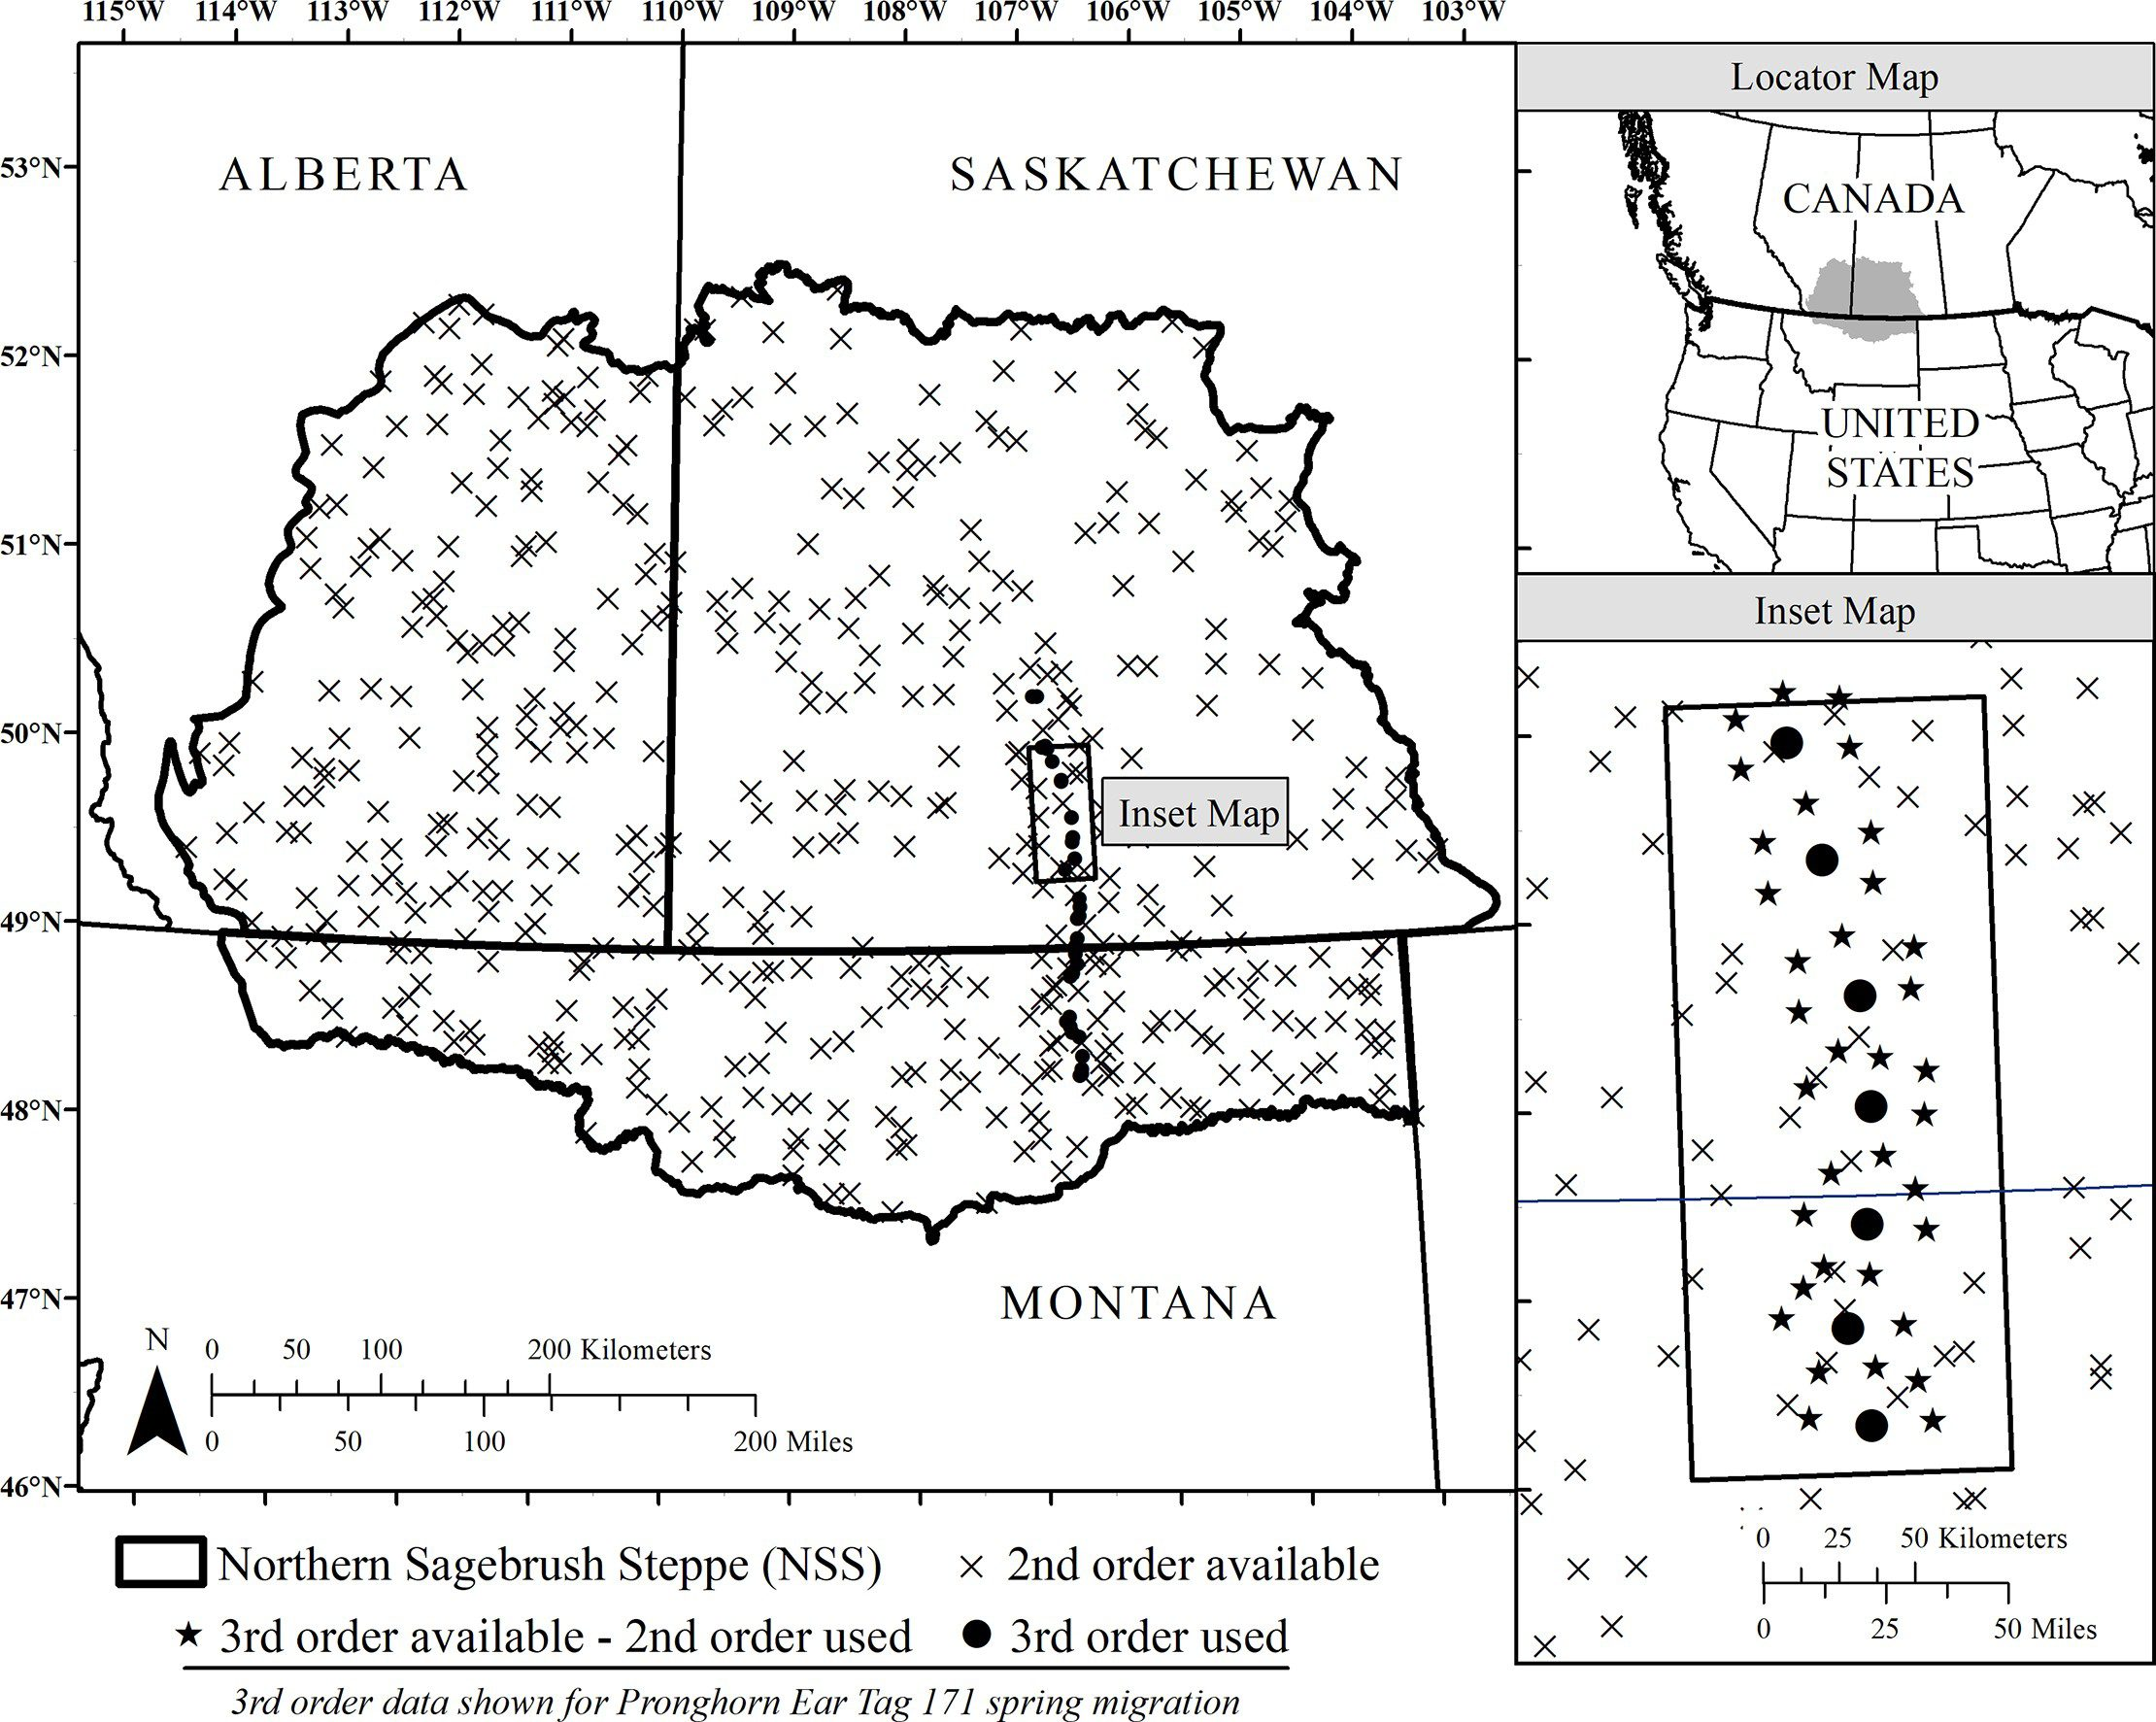 "An example of the hierarchically nested design for one individual during spring migration across the Northern Sagebrush Steppe. Pronghorn 'second-order' selection compares migratory neighborhoods to the entire study area whereas 'third-order' selection compares migratory pathway relocations to the migratory neighborhood. This original map was created using ArcGIS Desktop version 10.4.1 (ESRI, Inc., Redlands, California, USA) and includes vector data from Natural Earth (""Admin 1 –States, Provinces"") which complies with CC BY 4.0 license; available from https://protect-us.mimecast.com/s/pxvaCxkVBDILmvE2uAfAL2?domain=naturalearthdata.com (from [Jakes et al., 2020])"